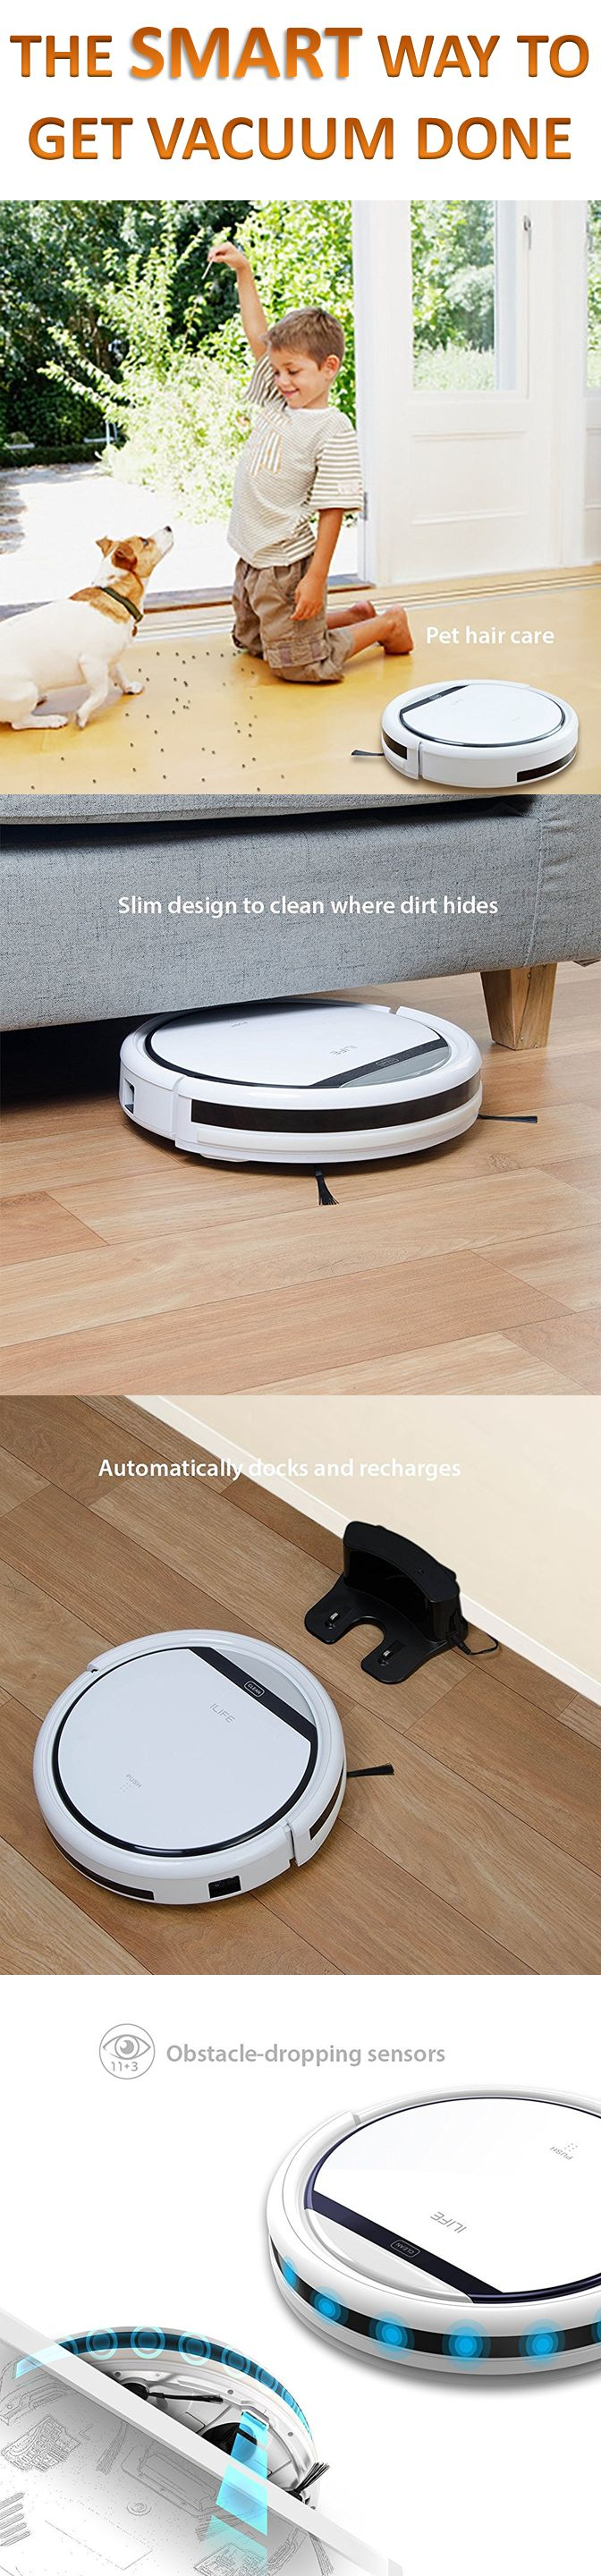 ILIFE V3s Robotic Vacuum Cleaner for Pets and Allergies